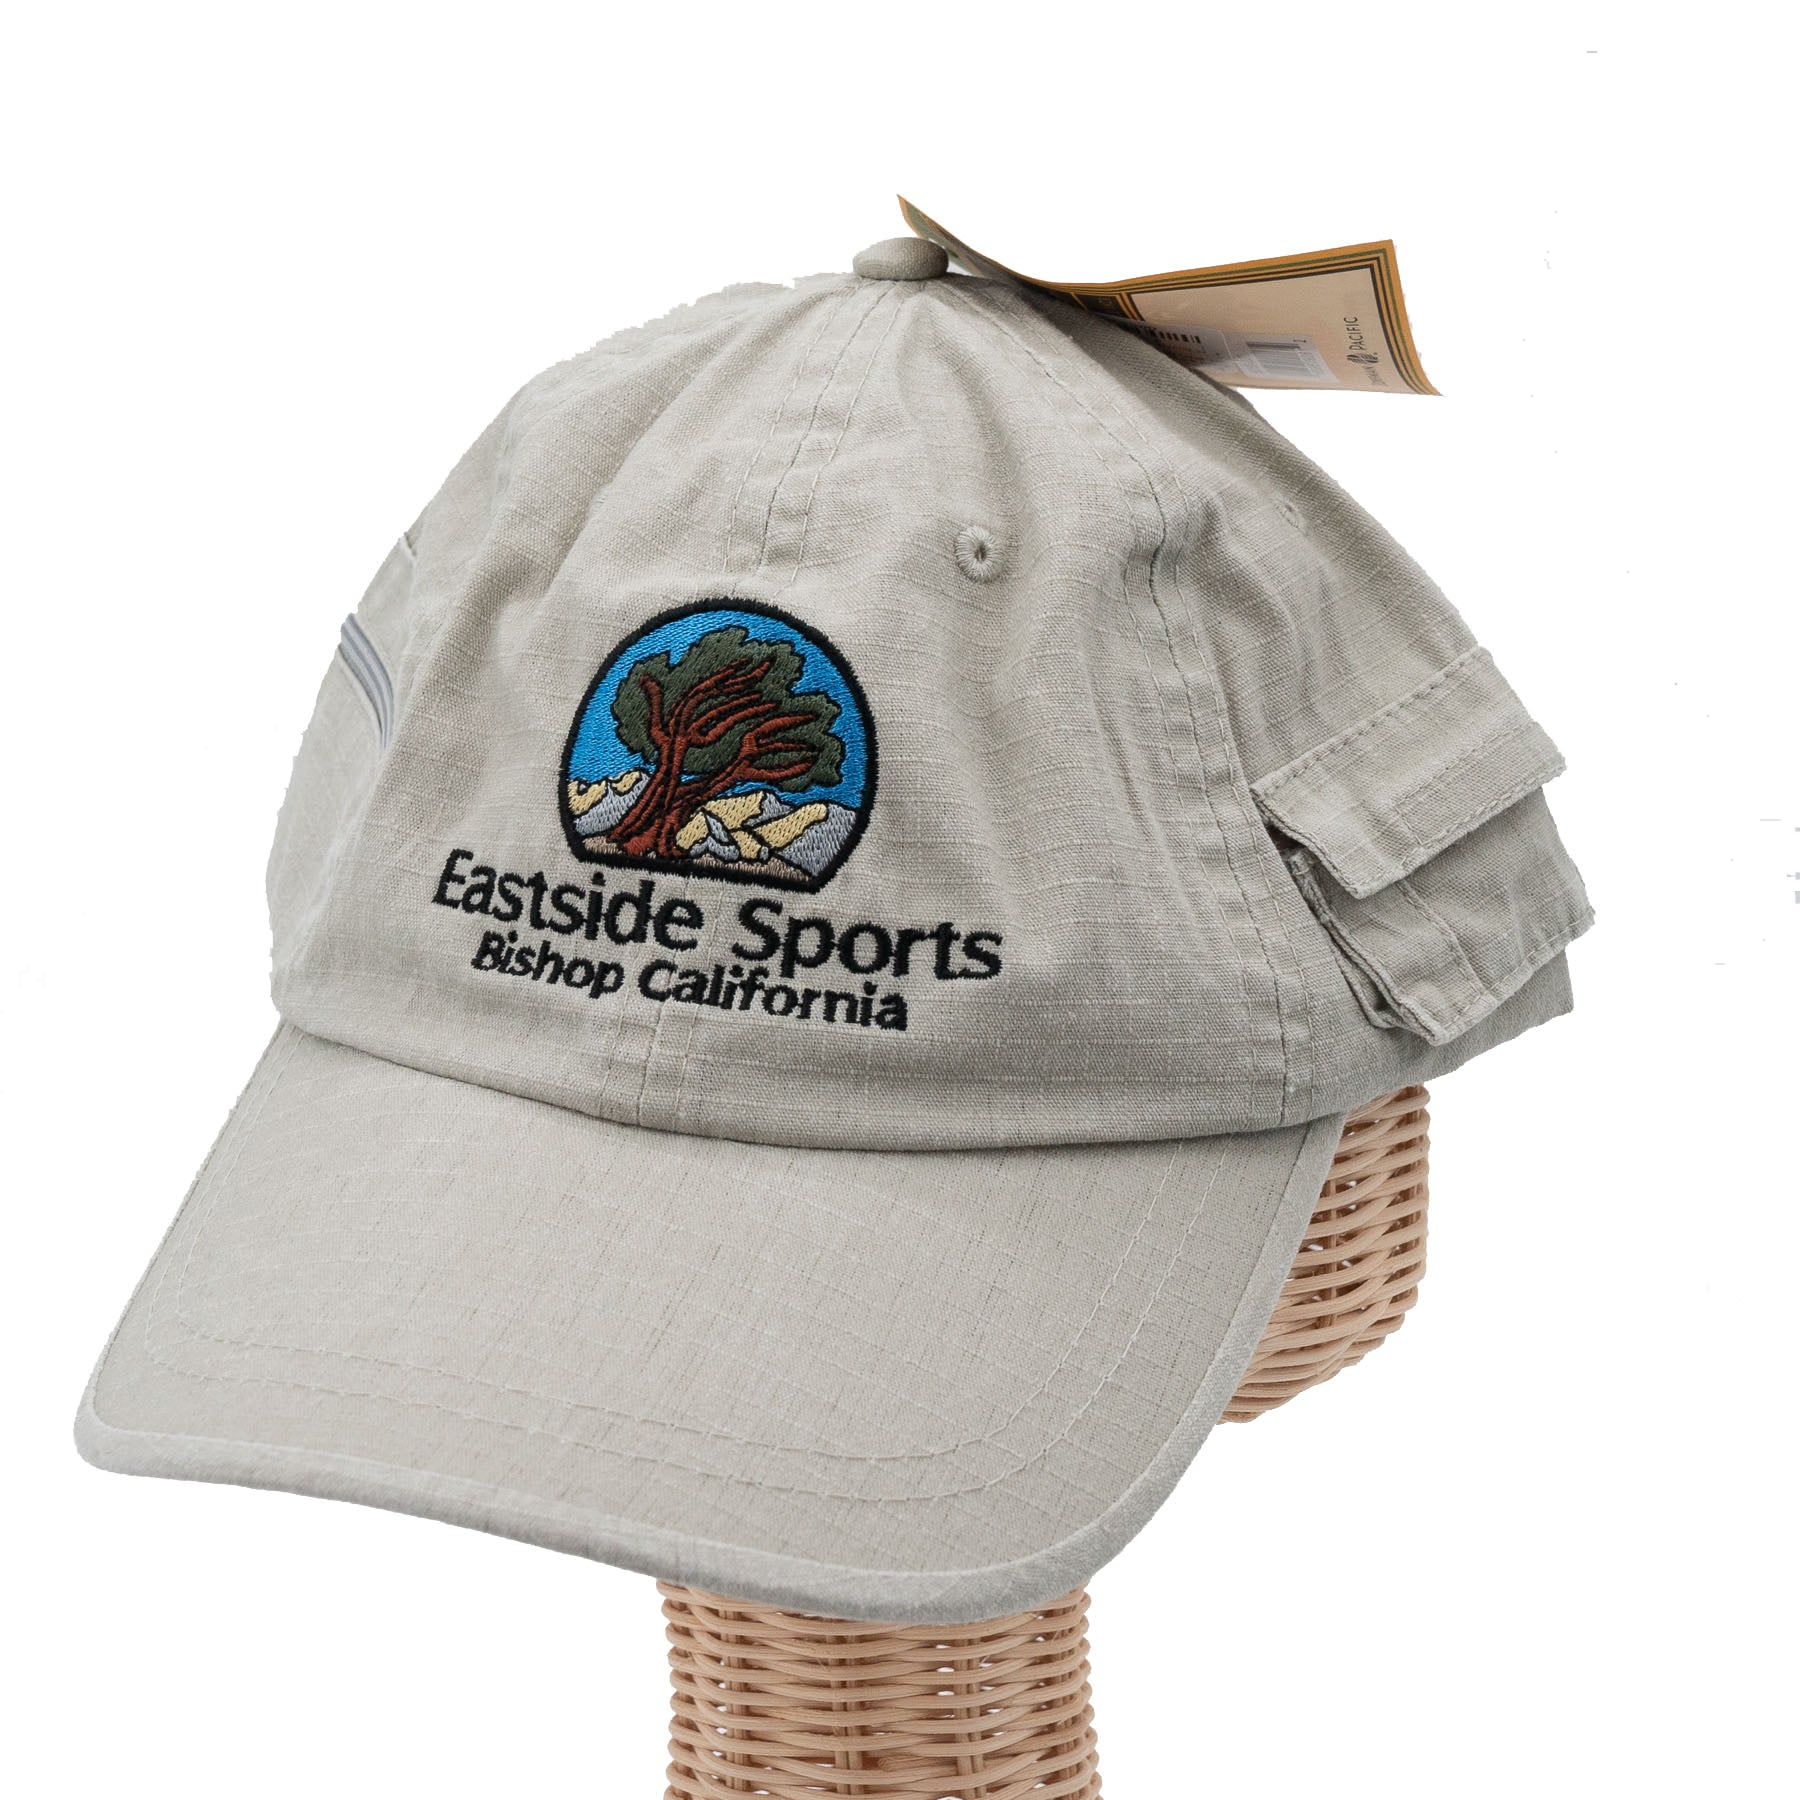 the front of the stone color hat